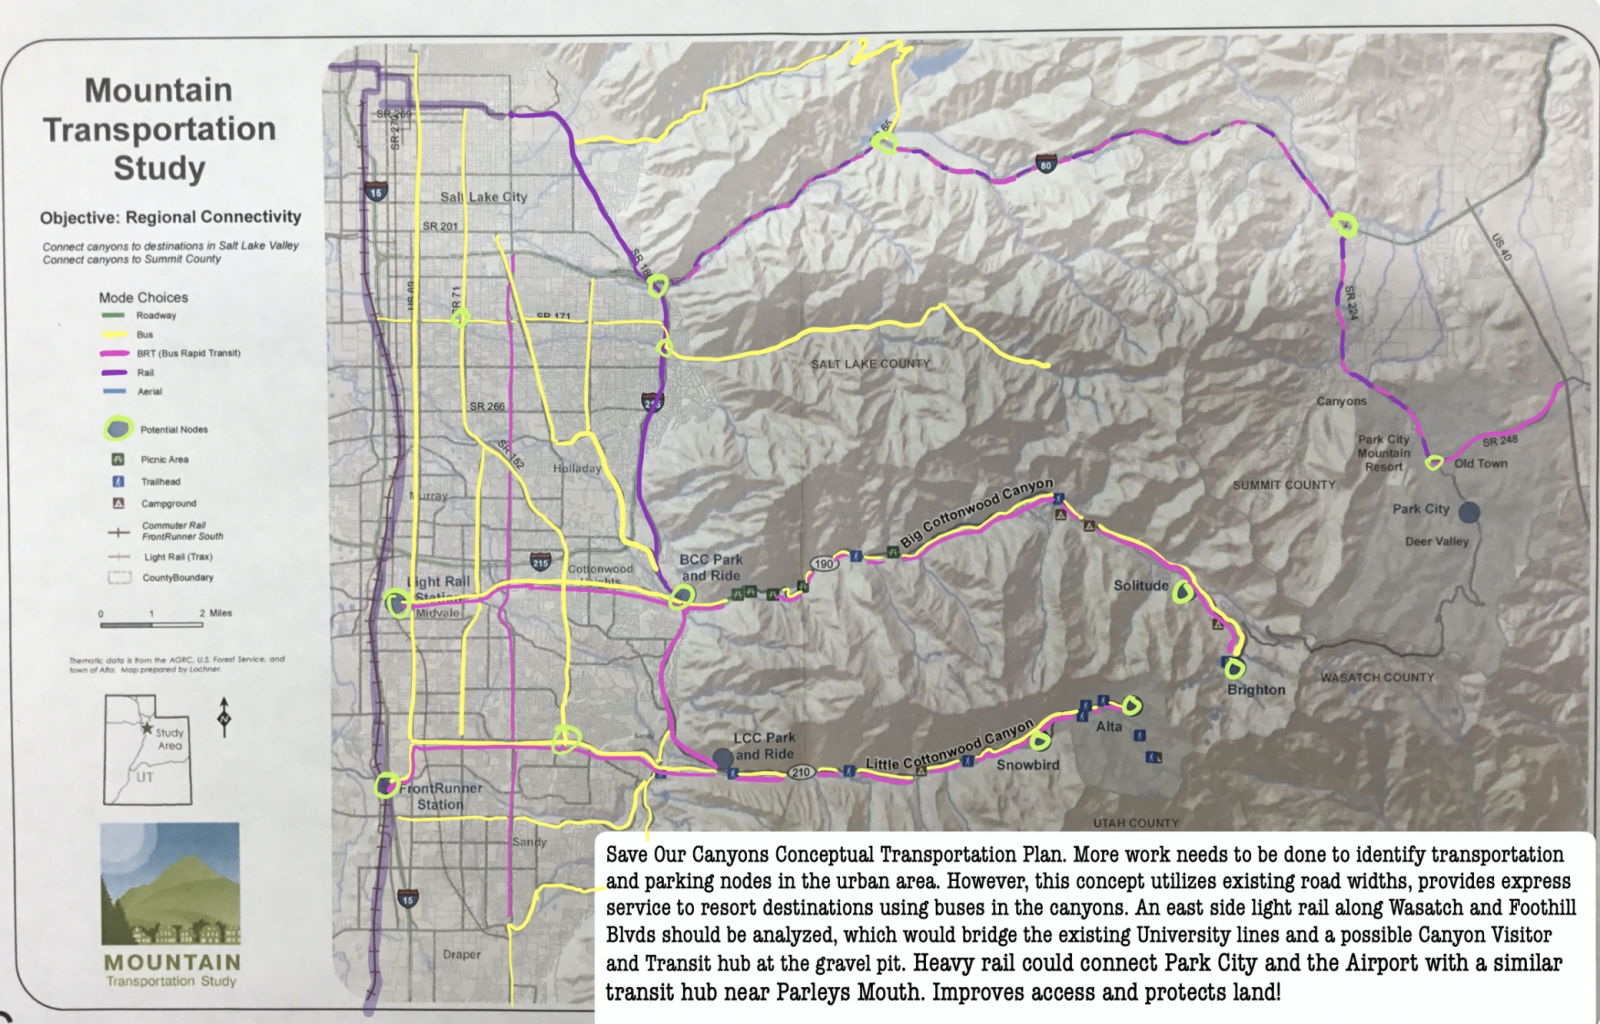 UDOT Deja Vu and CWC Alternative Plans for the Canyons